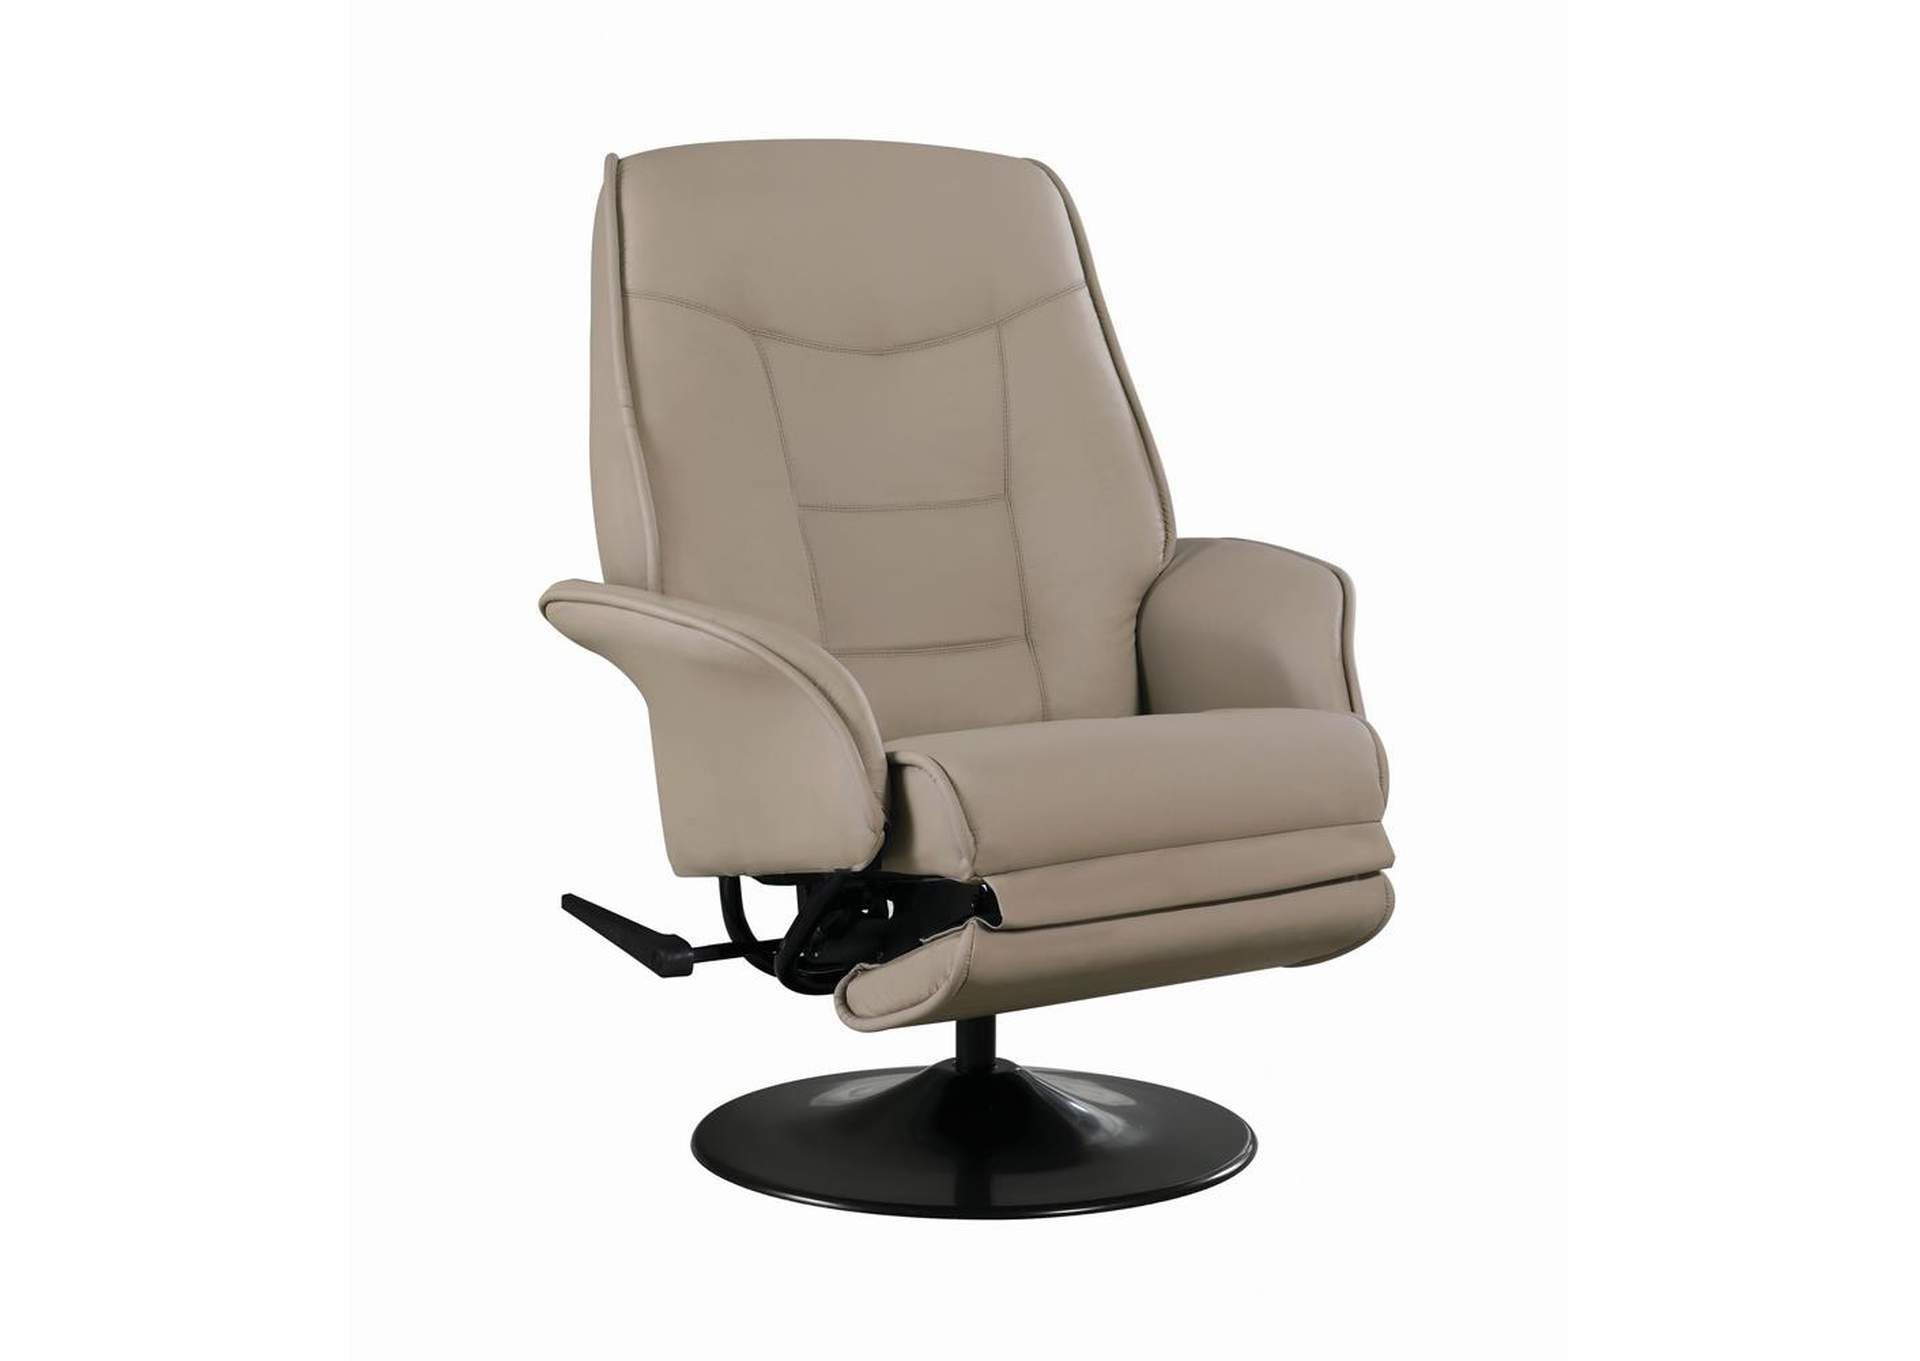 Zorba Berri Contemporary Beige Swivel Recliner,Coaster Furniture